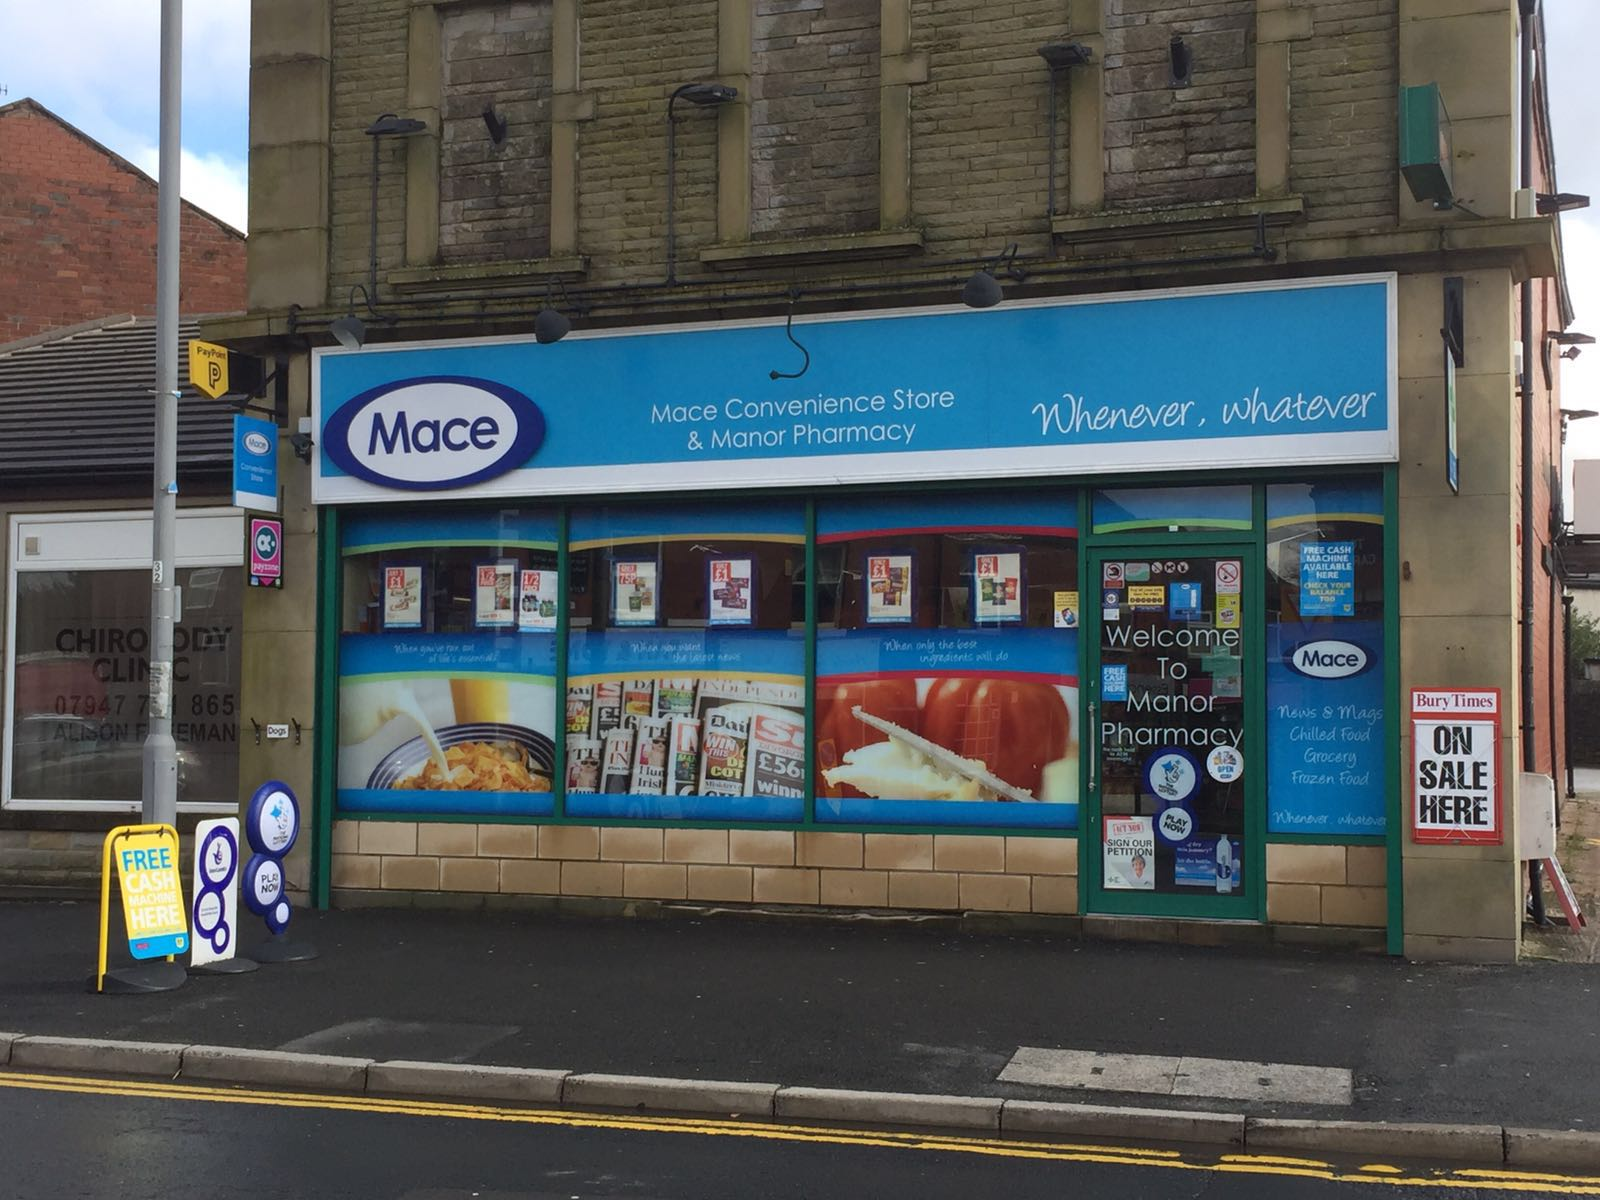 External sign for Mace convenience store